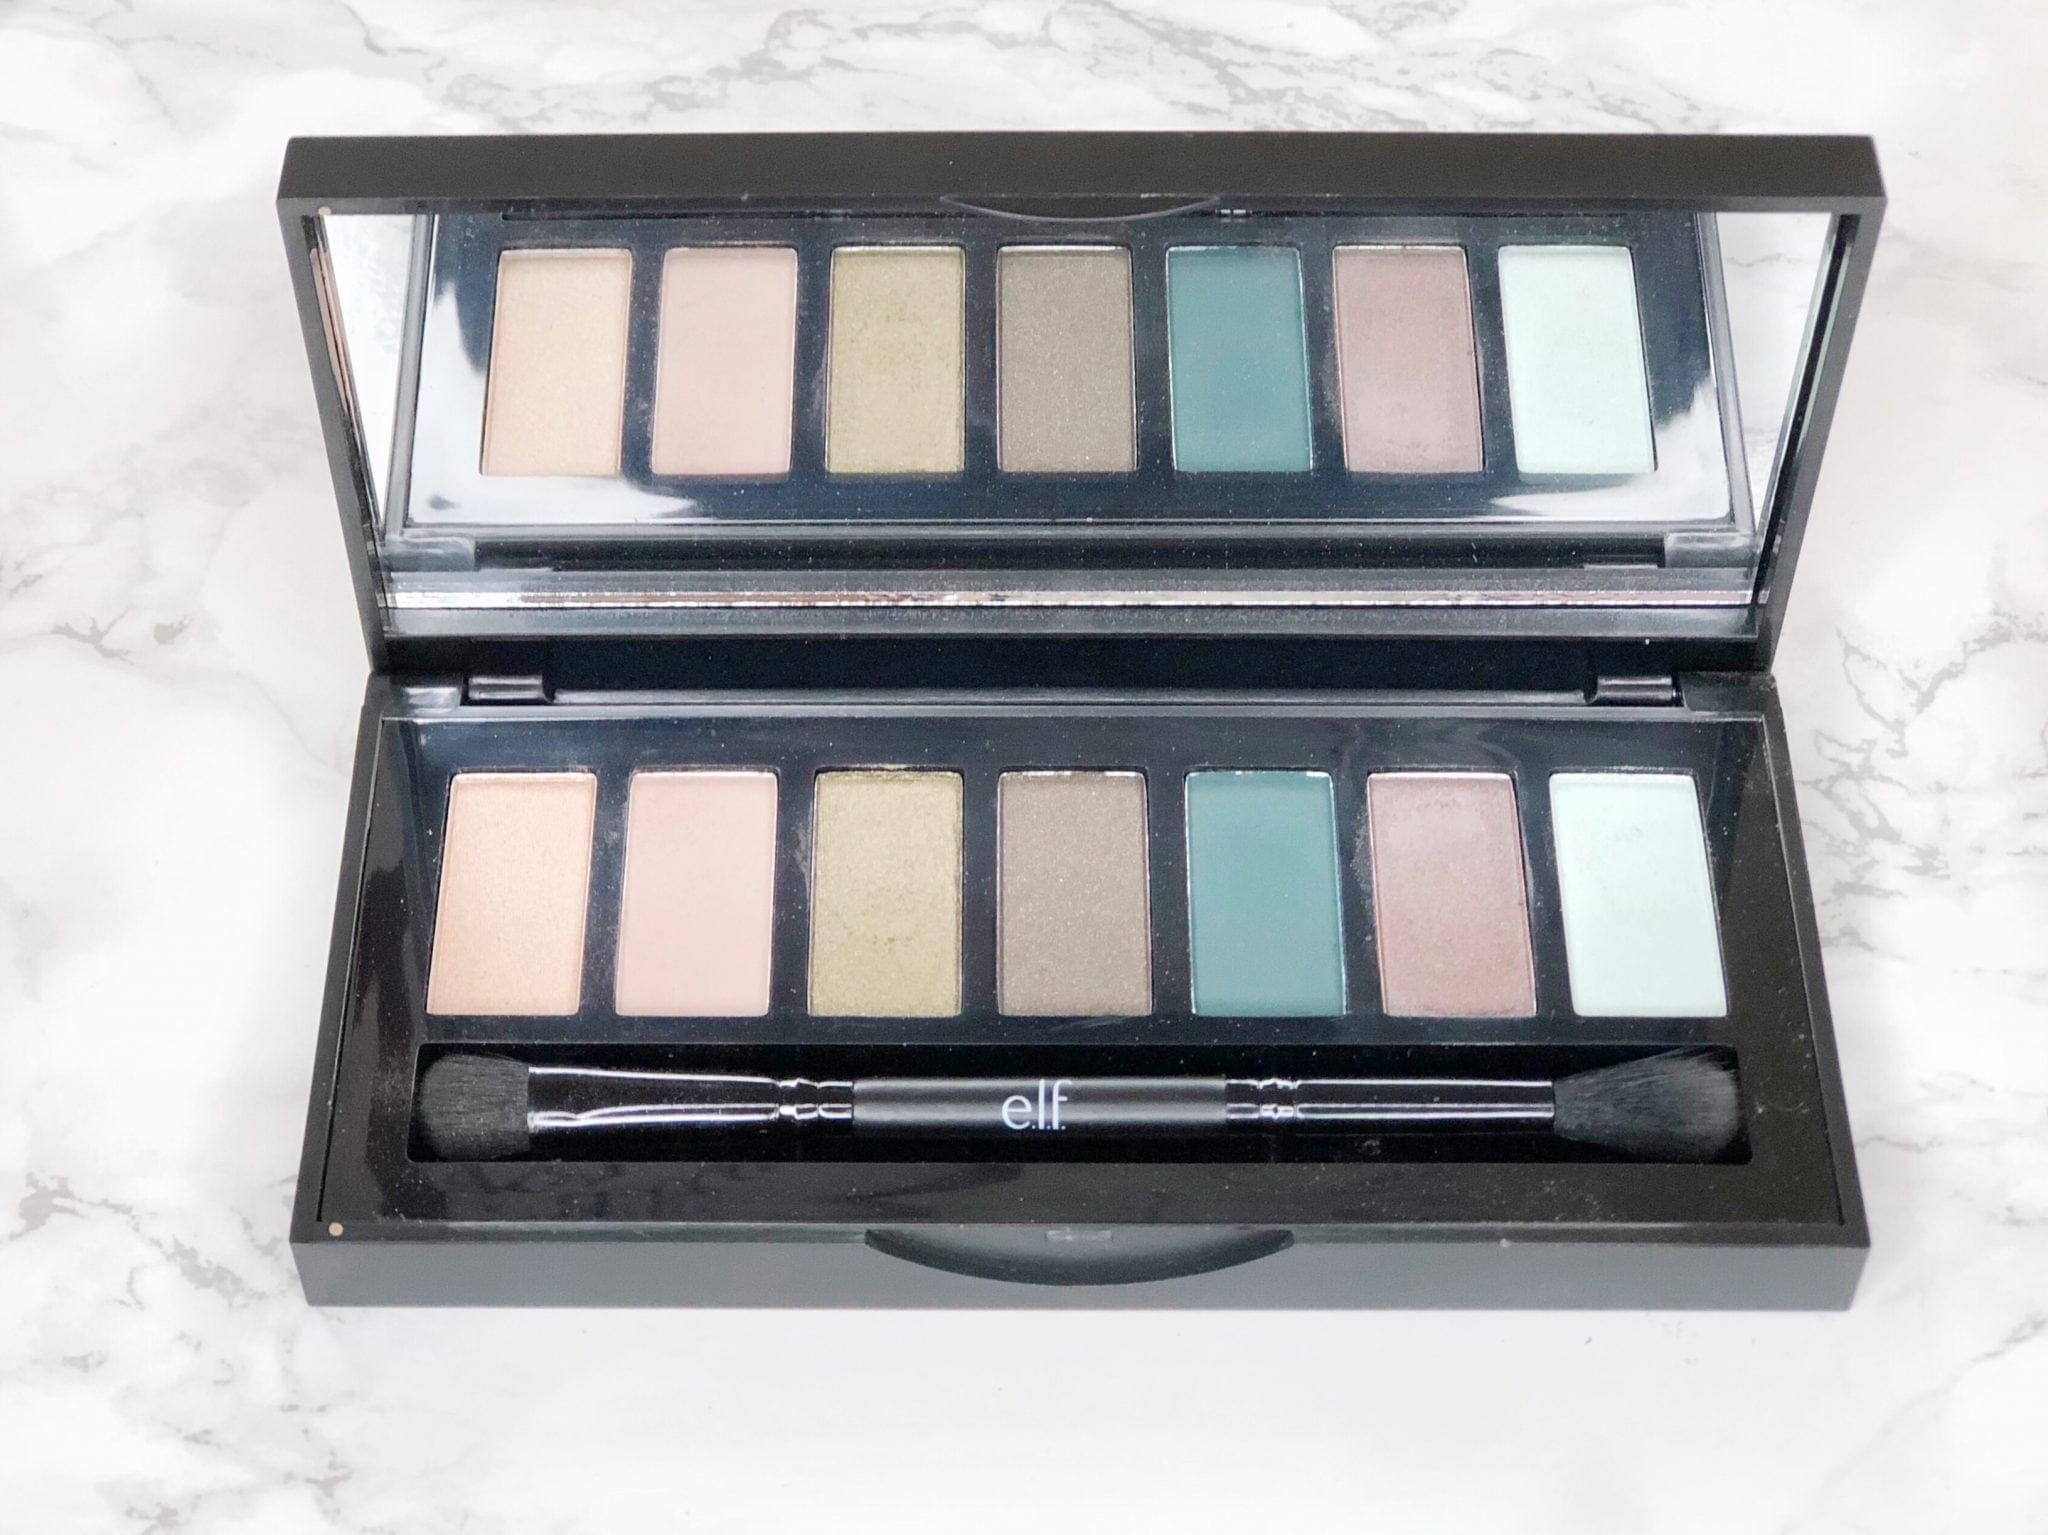 e.l.f cosmetics Chromatic eyeshadow palettes